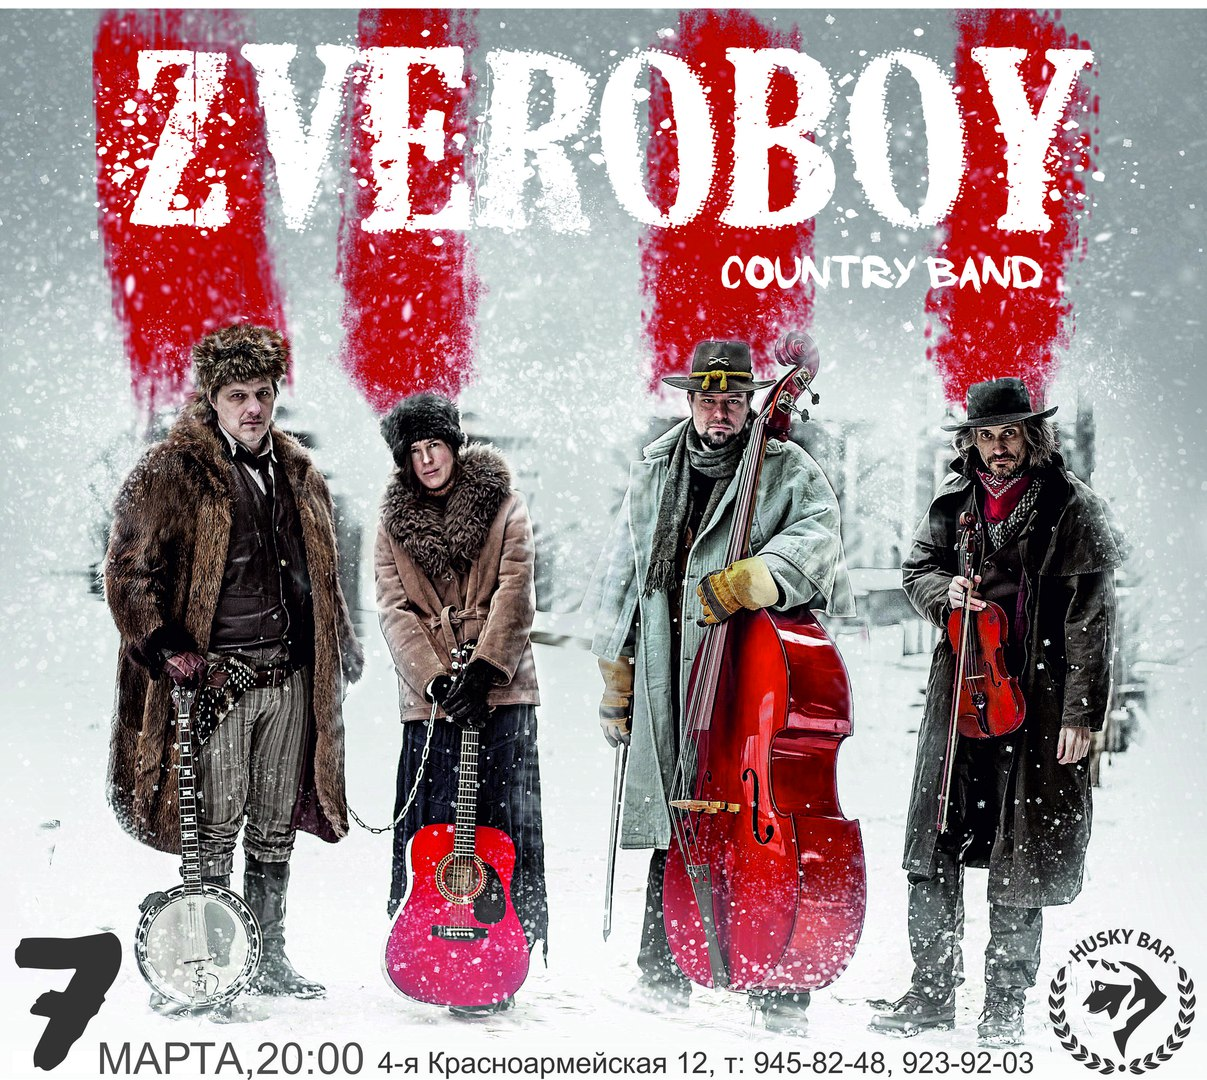 07.03 Zveroboy string band в баре Хаски!